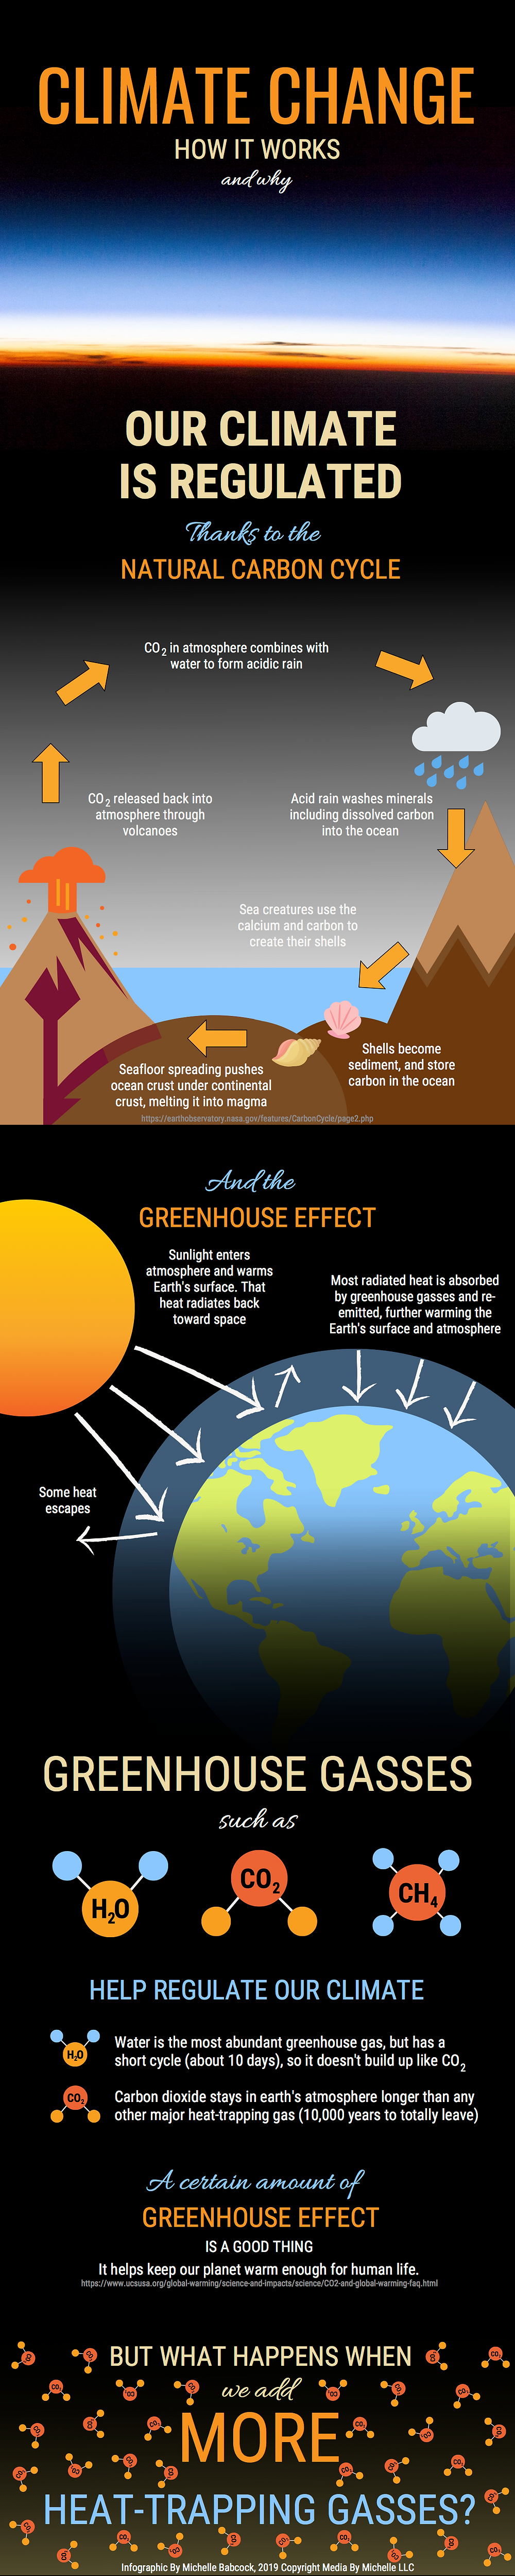 Two-part infographic explaining climate change using the carbon cycle and the greenhouse effect. Climate change: how it works and why. Our climate is regulated thanks to the Natural carbon cycle. A flowchart illustrating the cycle in six steps over an image. Step 1: Carbon dioxide in the atmosphere combines with water to form acidic rain. Step 2: Acid rain washes minerals including dissolved carbon into the ocean. Step 3: Sea creatures use the calcium and carbon to create their shells. Step 4: Shells become sediment and store carbon in the ocean. Step 5: Seafloor spreading pushes the ocean crust under the continental crust, melting it into magma. Step 6: Carbon dioxide is released back into the atmosphere through volcanoes. Then the cycle repeats with more acid rain. Part 2 of the infographic is titled and the greenhouse effect. Sunlight enters the atmosphere and warms Earth's surface. That heat radiates back towards space. While some heat escapes, most radiated heat is absorbed by greenhouse gases and re-emitted, further warming the Earth's surface and atmosphere. Greenhouse gases such as water, carbon dioxide, and methane help regulate our climate. Water is the most abundant greenhouse gas, but has a short cycle of about 10 days, so it doesn't build up like carbon dioxide. Carbon dioxide stays in Earth's atmosphere longer than any other major heat-trapping gas: it takes 10,000 years to totally leave. A certain amount of greenhouse effect is a good thing. It helps our planet keep our planet warm enough for human life. Link to source. But what happens when we add more trapping gases? Many carbon dioxide molecules: the background becomes a warmer color. Infographic by Michelle Babcock, 2019 copyright media by Michelle LLC.